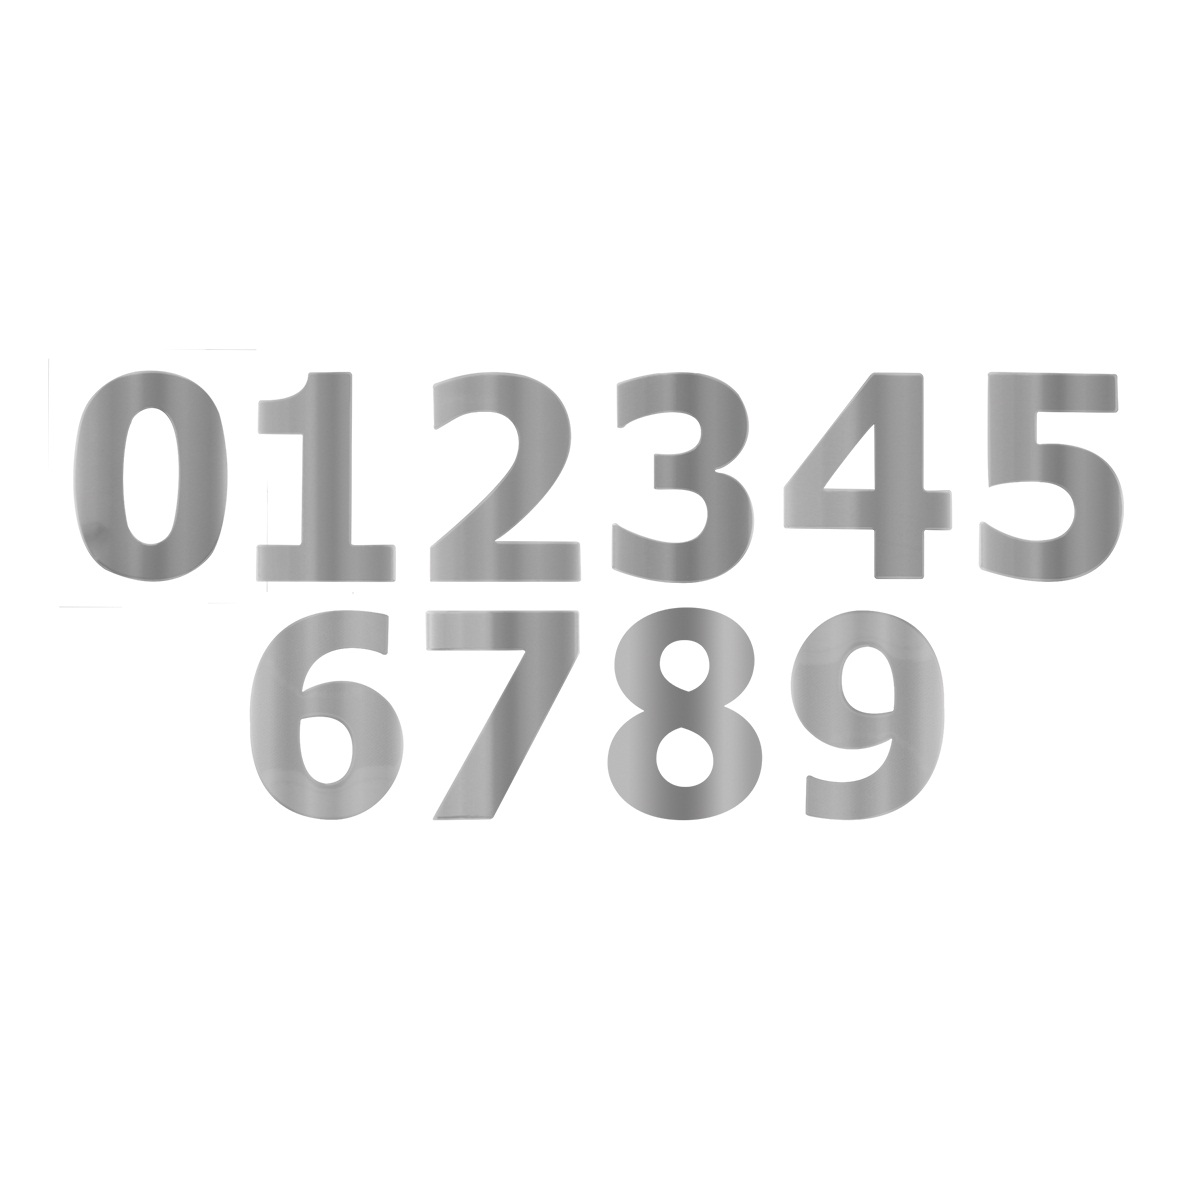 Chrome Plated/Stainless Steel Number Cut Outs